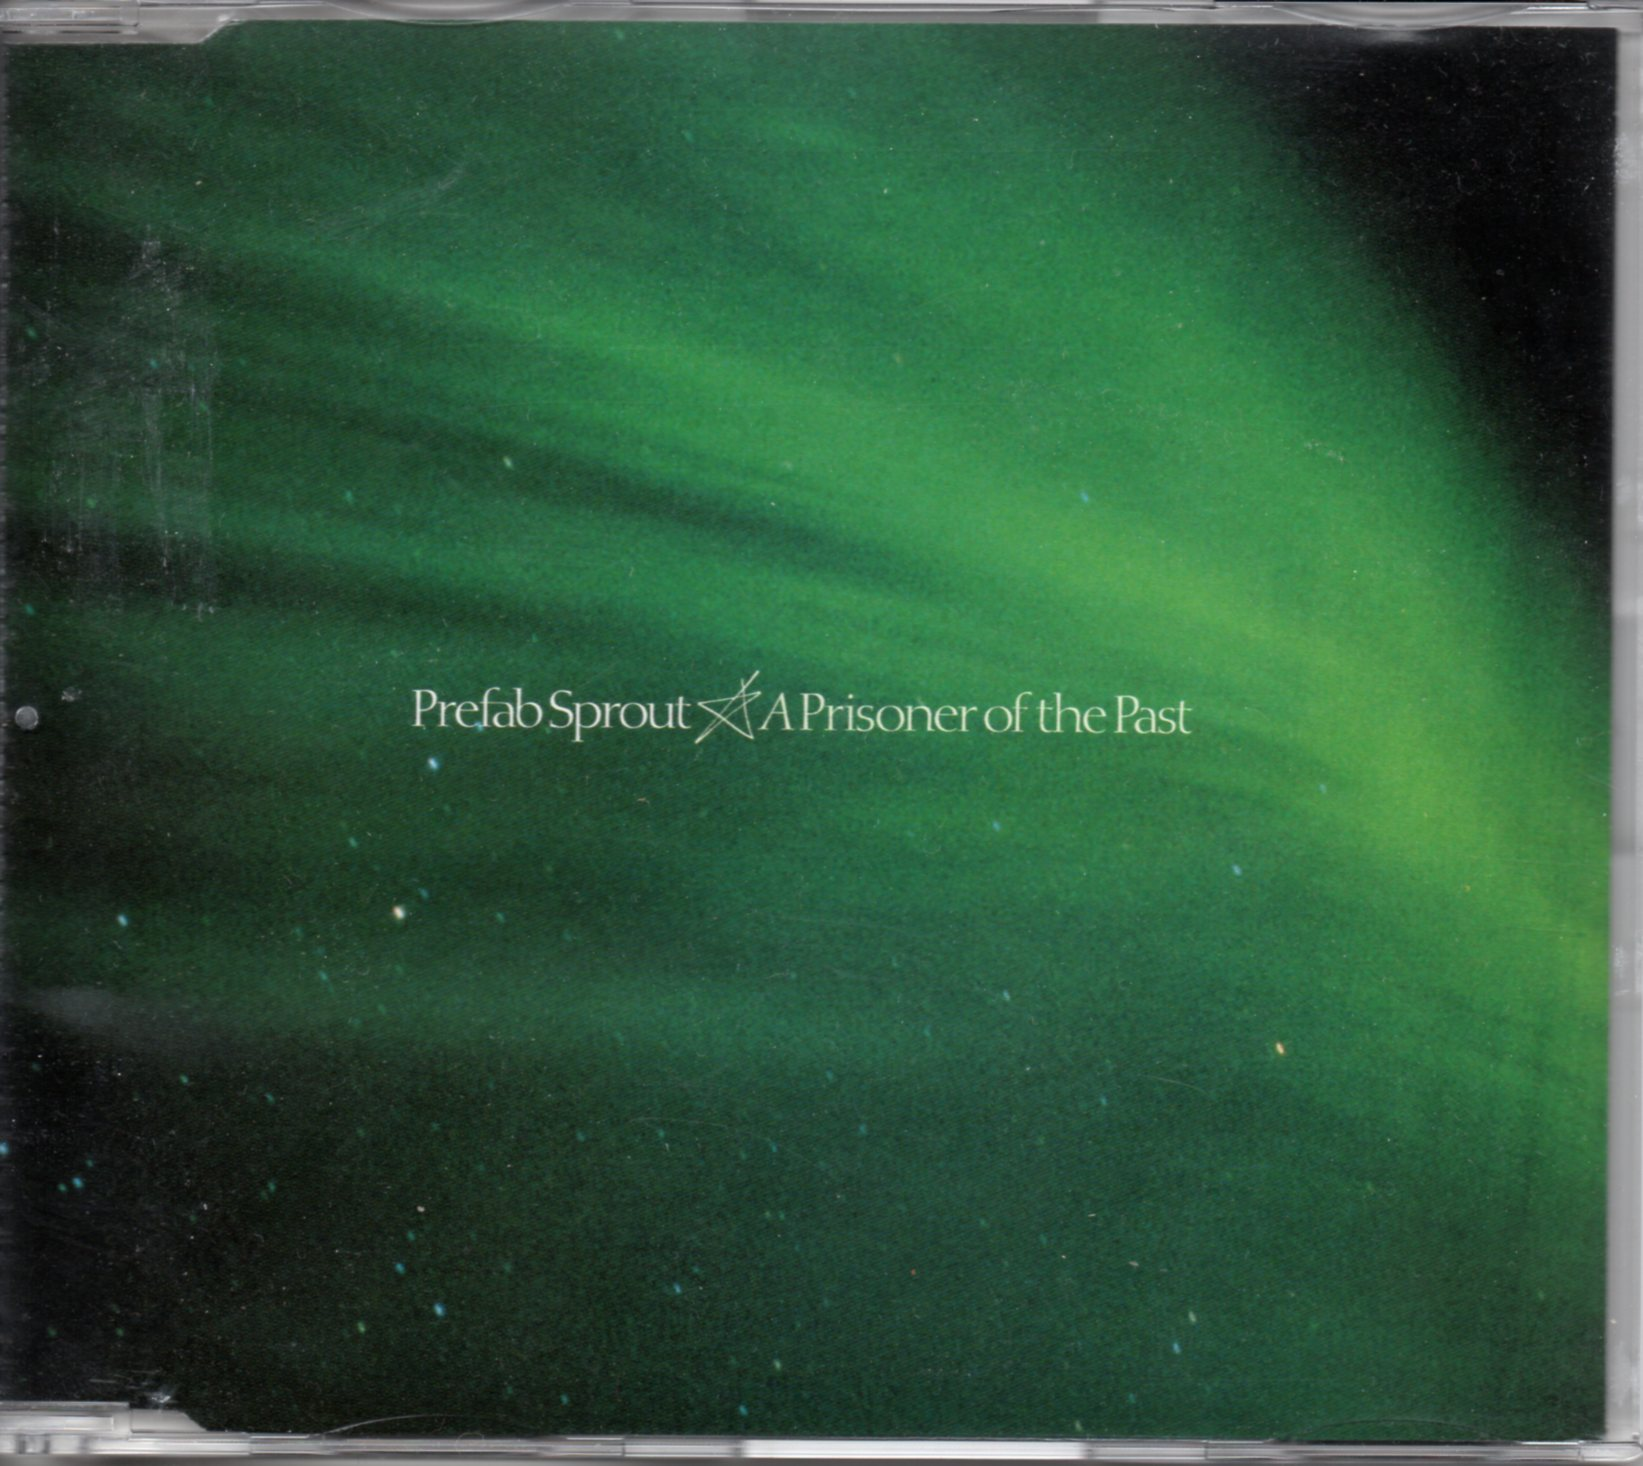 PREFAB SPROUT - A prisoner of the past 2-track jewel case - CD Maxi